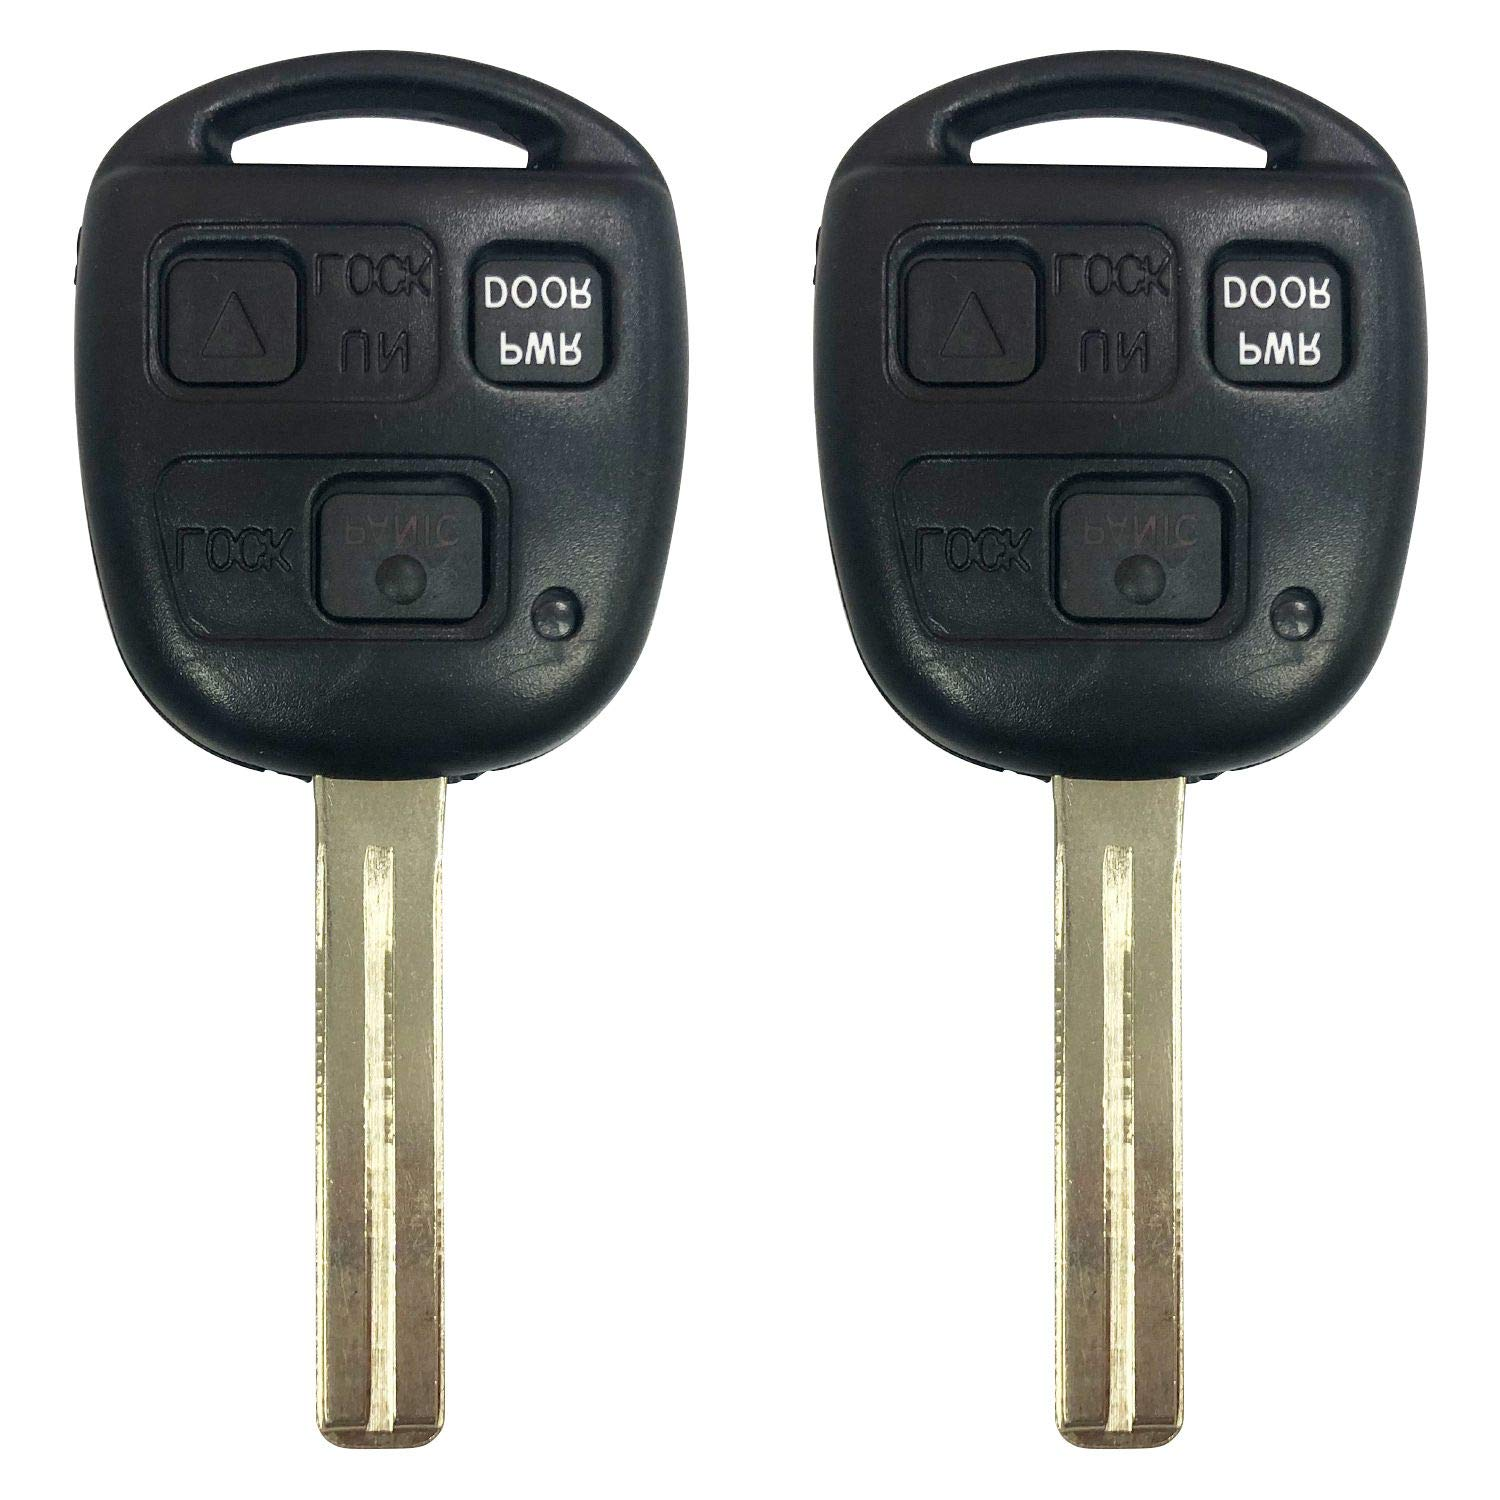 New Replacement for Lexus 2004 2005 2006 RX330 2007 2008 2009 RX350 Remote Key Fob,FCCID:HYQ12BBT,by AUTOKEYMAX (PAIR)